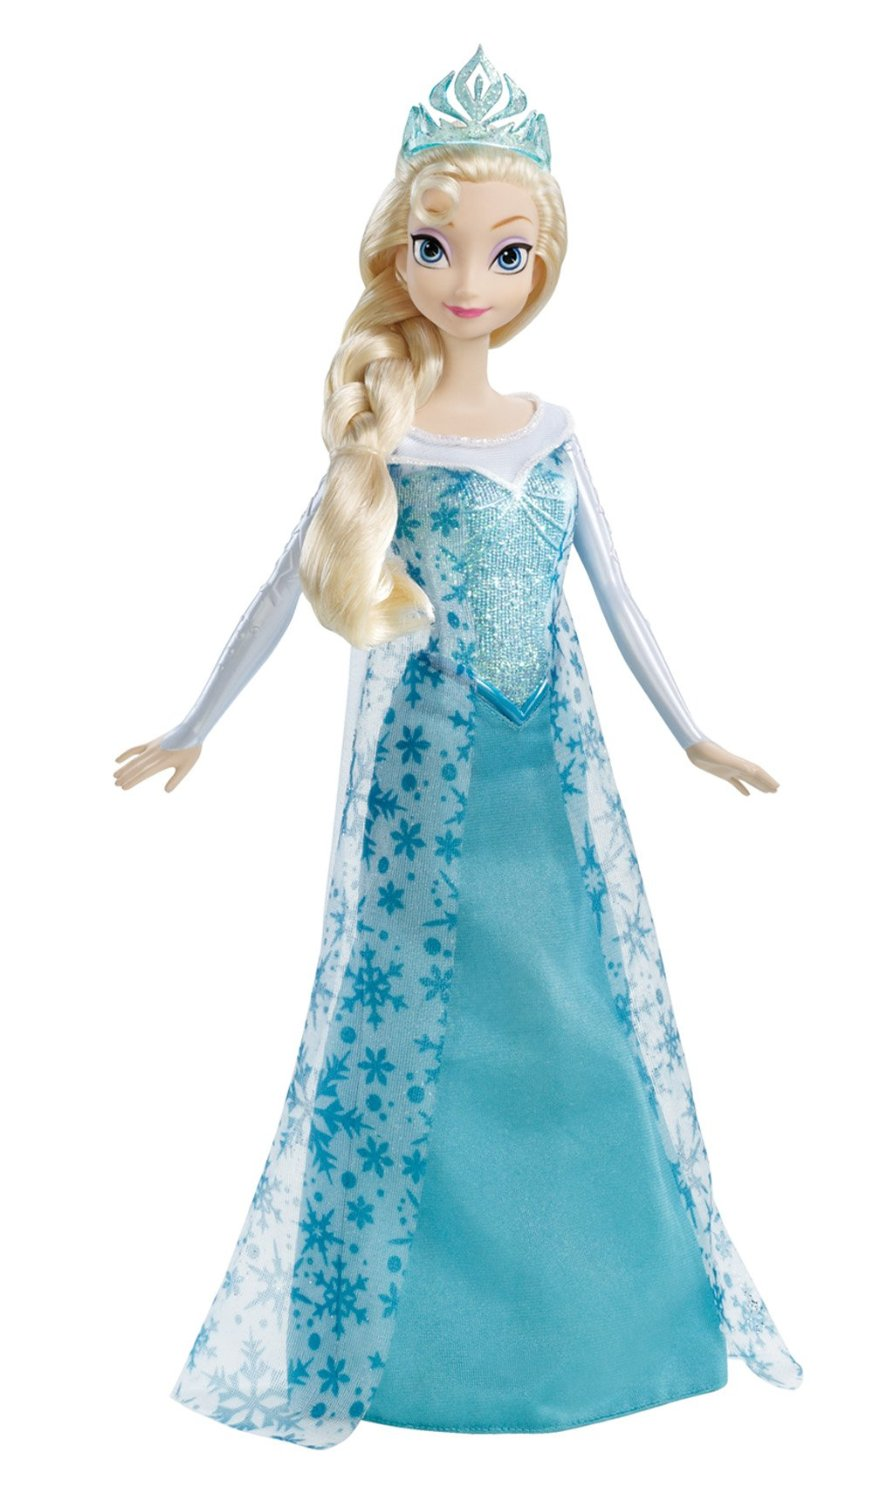 barbie frozen dolls